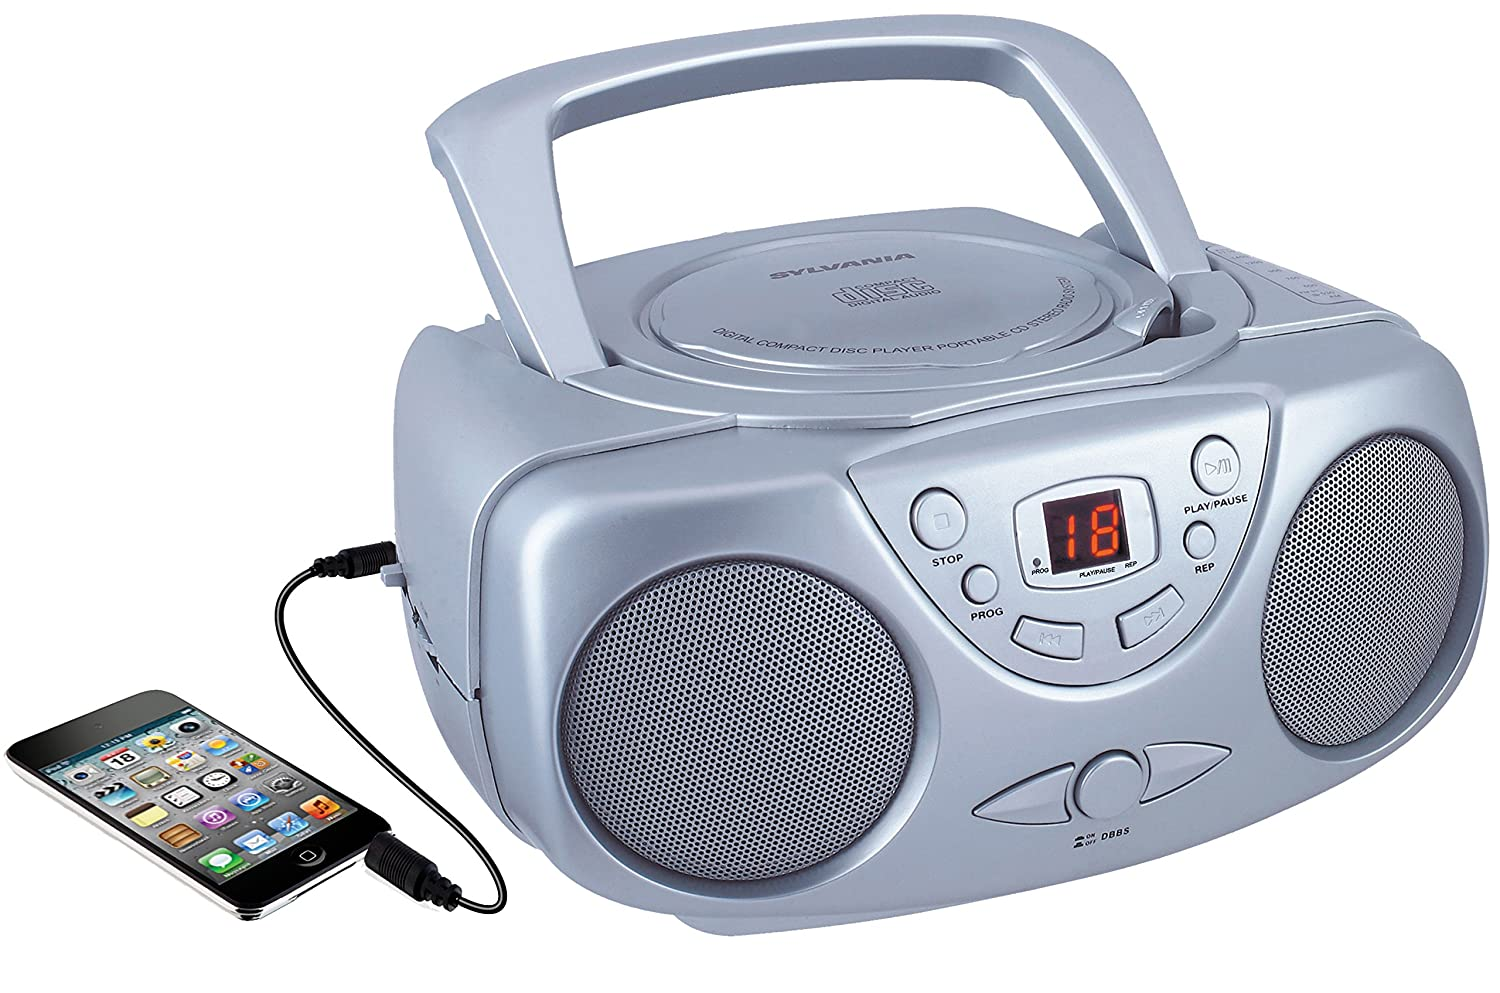 Cd radio player